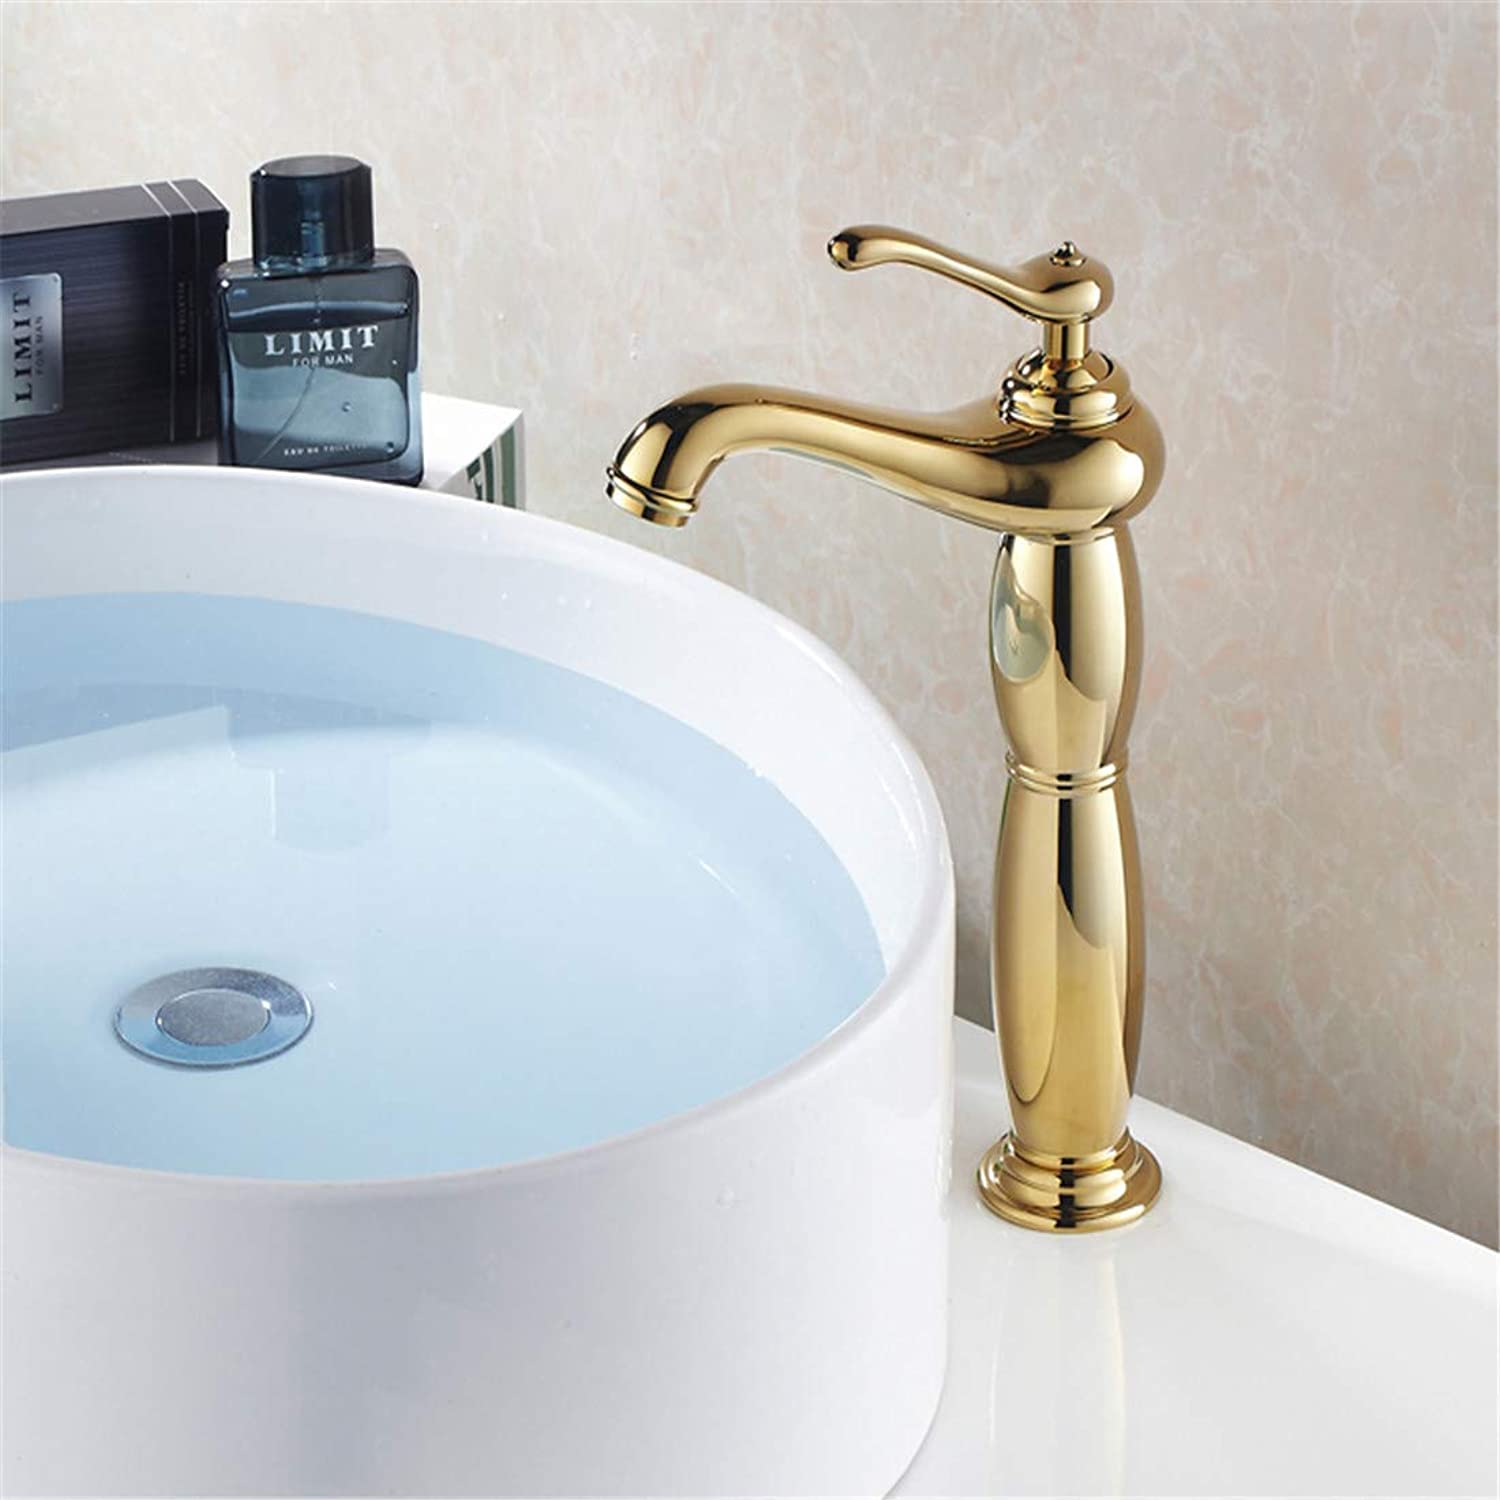 Retro Plated Hot and Cold Faucet Retrogold Bathroom Faucet Tall Faucet Brass Chrome Bathroom Taps